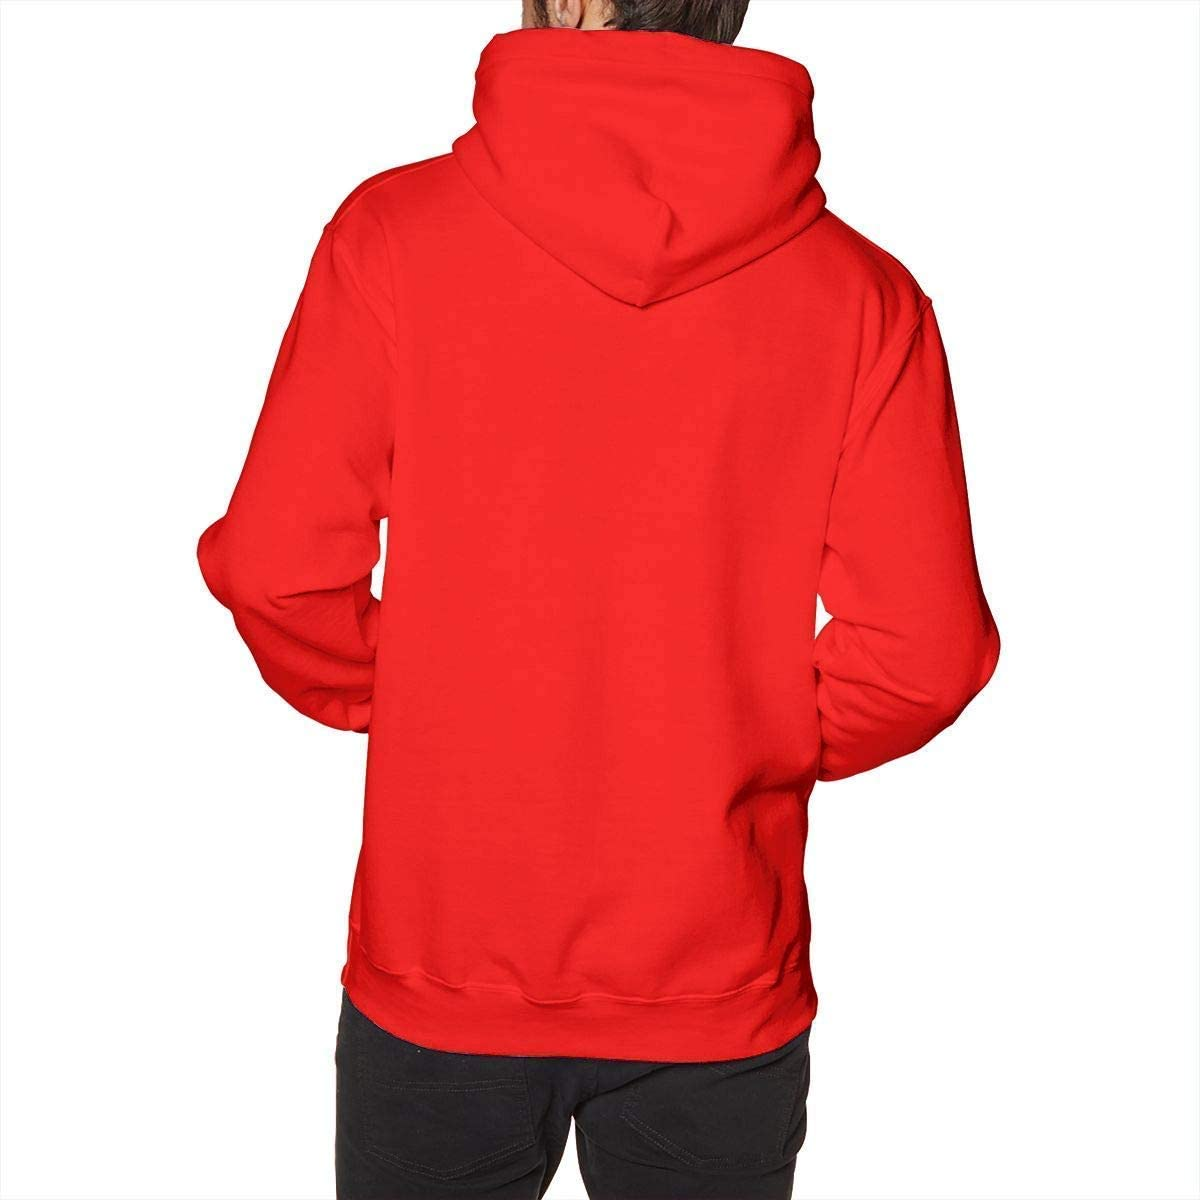 YCR4FC Mens Thin Lizzy Pullover Hoodie Hooded Sweatshirt Red XX Large